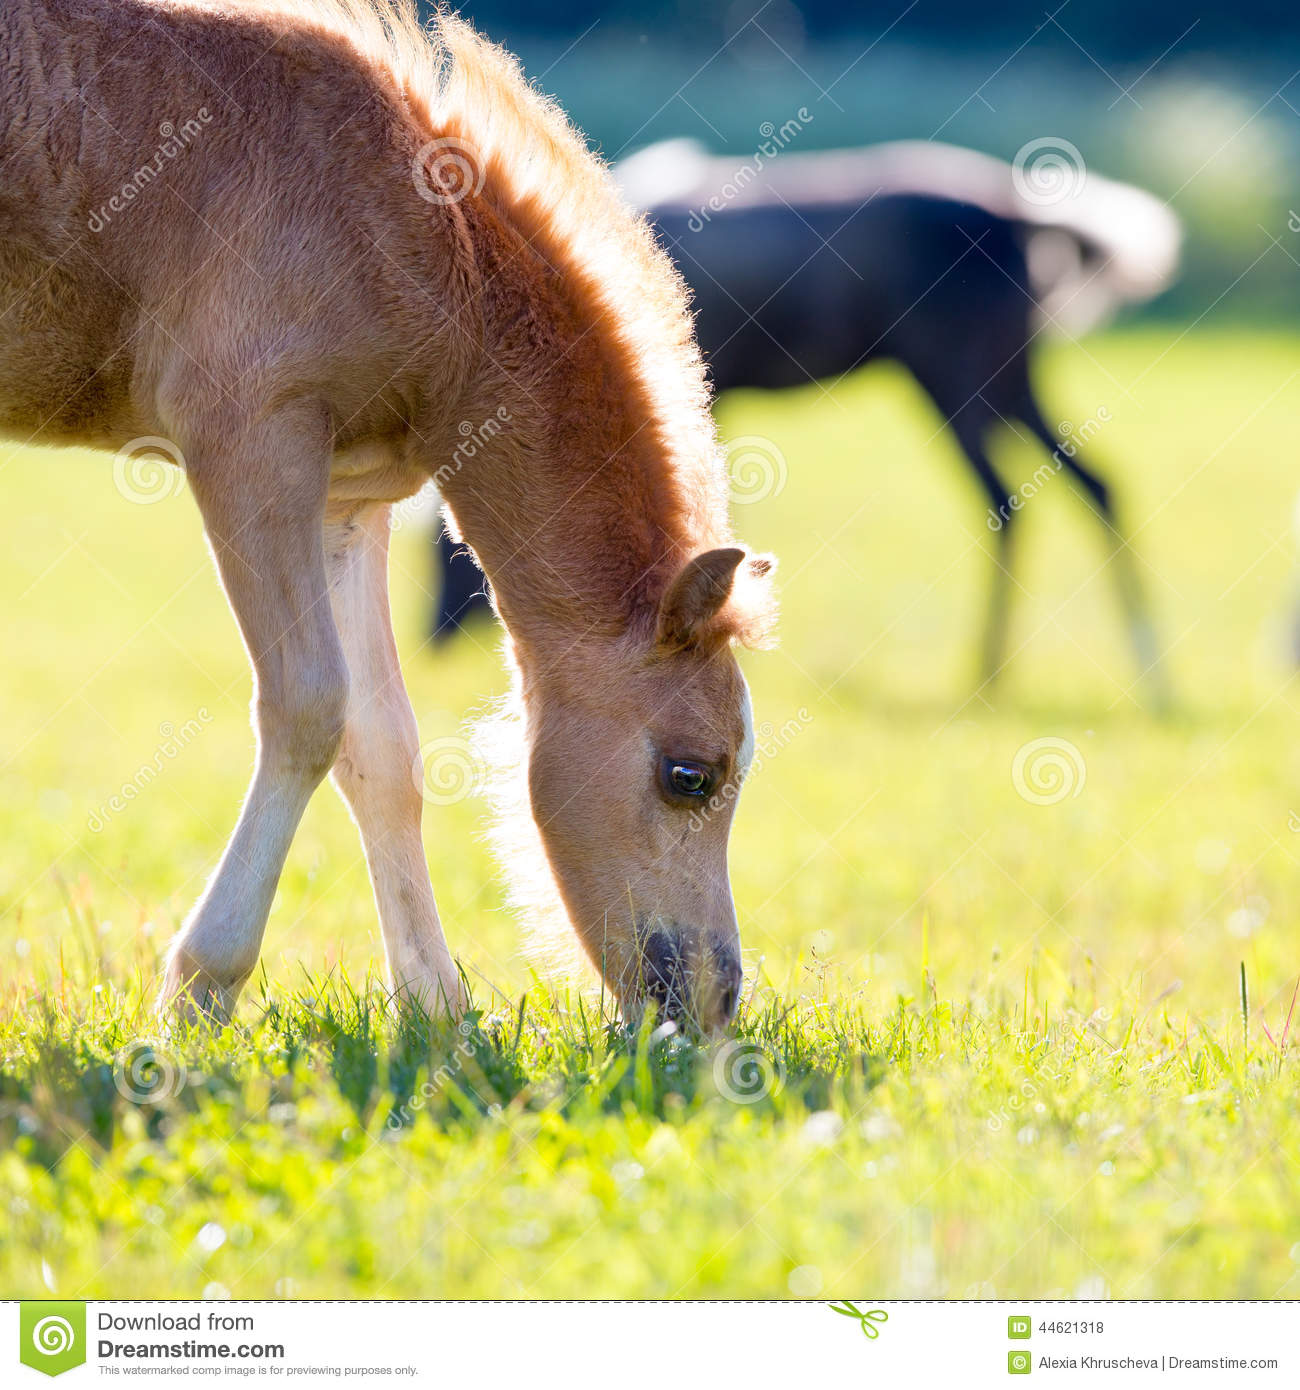 Foal of a horse eating grass